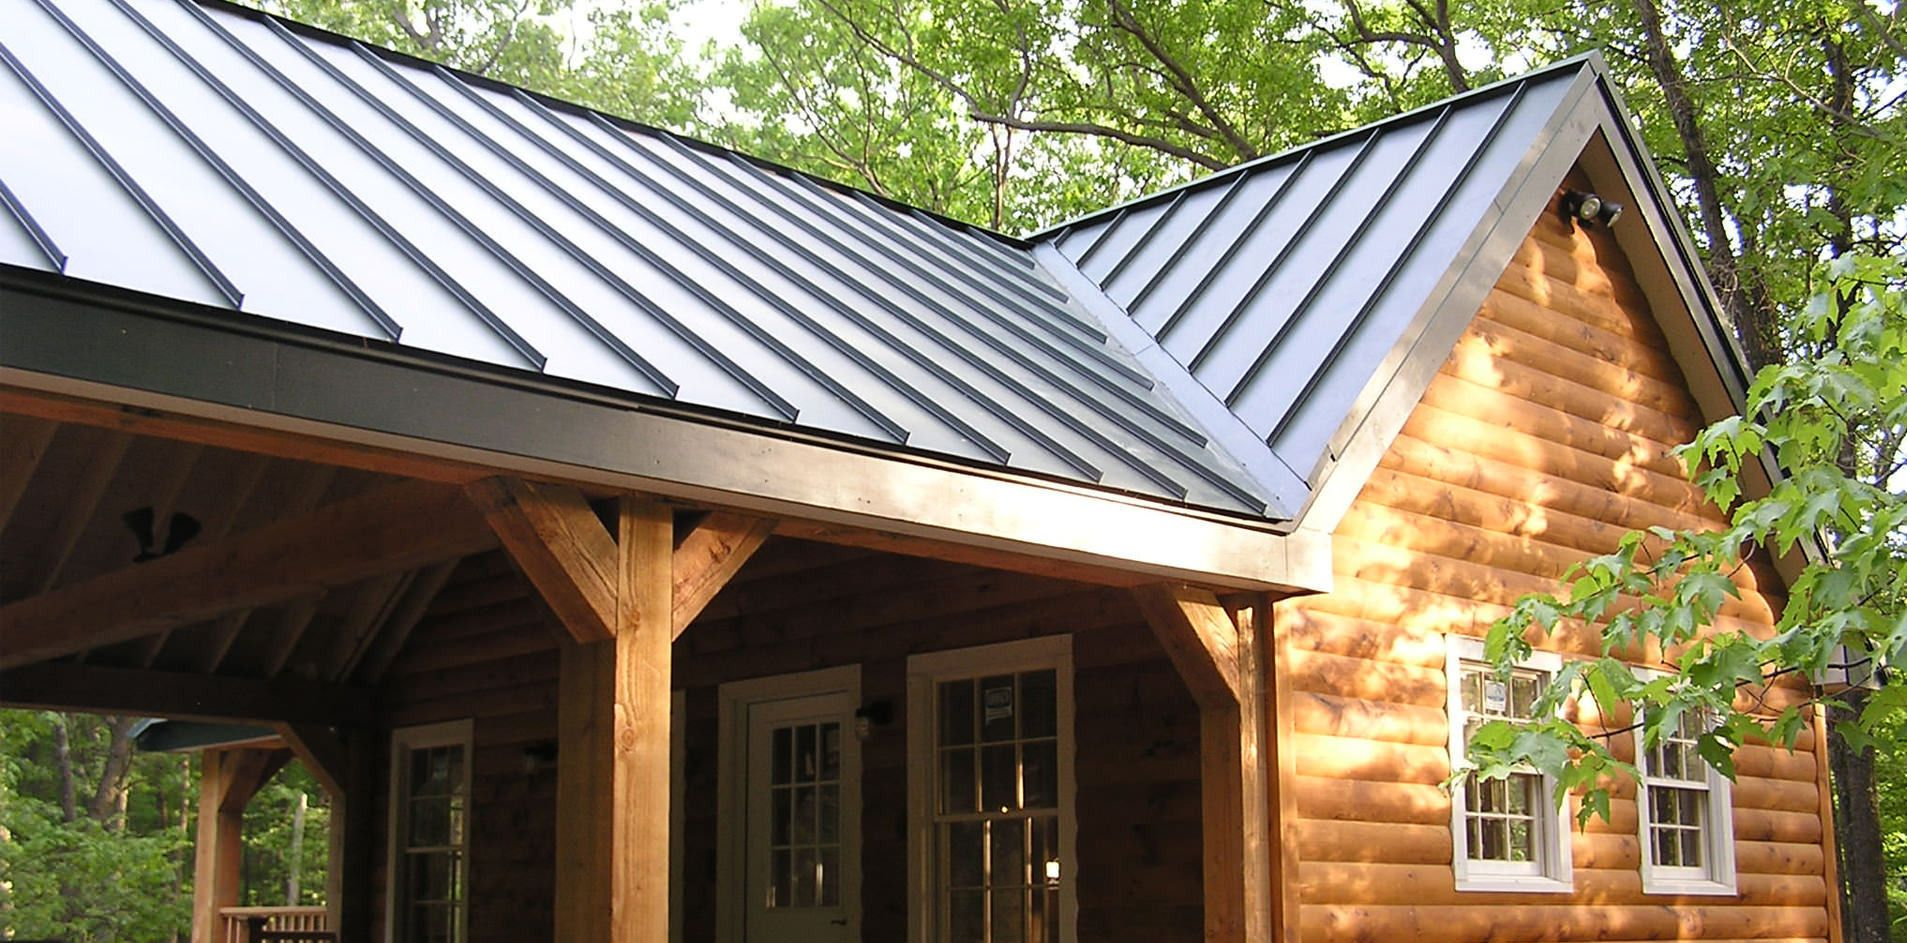 Sheet Metal Roofing Exposed To The Harshest Outdoor Elements Year Round Is Usually Hot Dipped Or Elect Standing Seam Metal Roof Metal Roof Sheet Metal Roofing